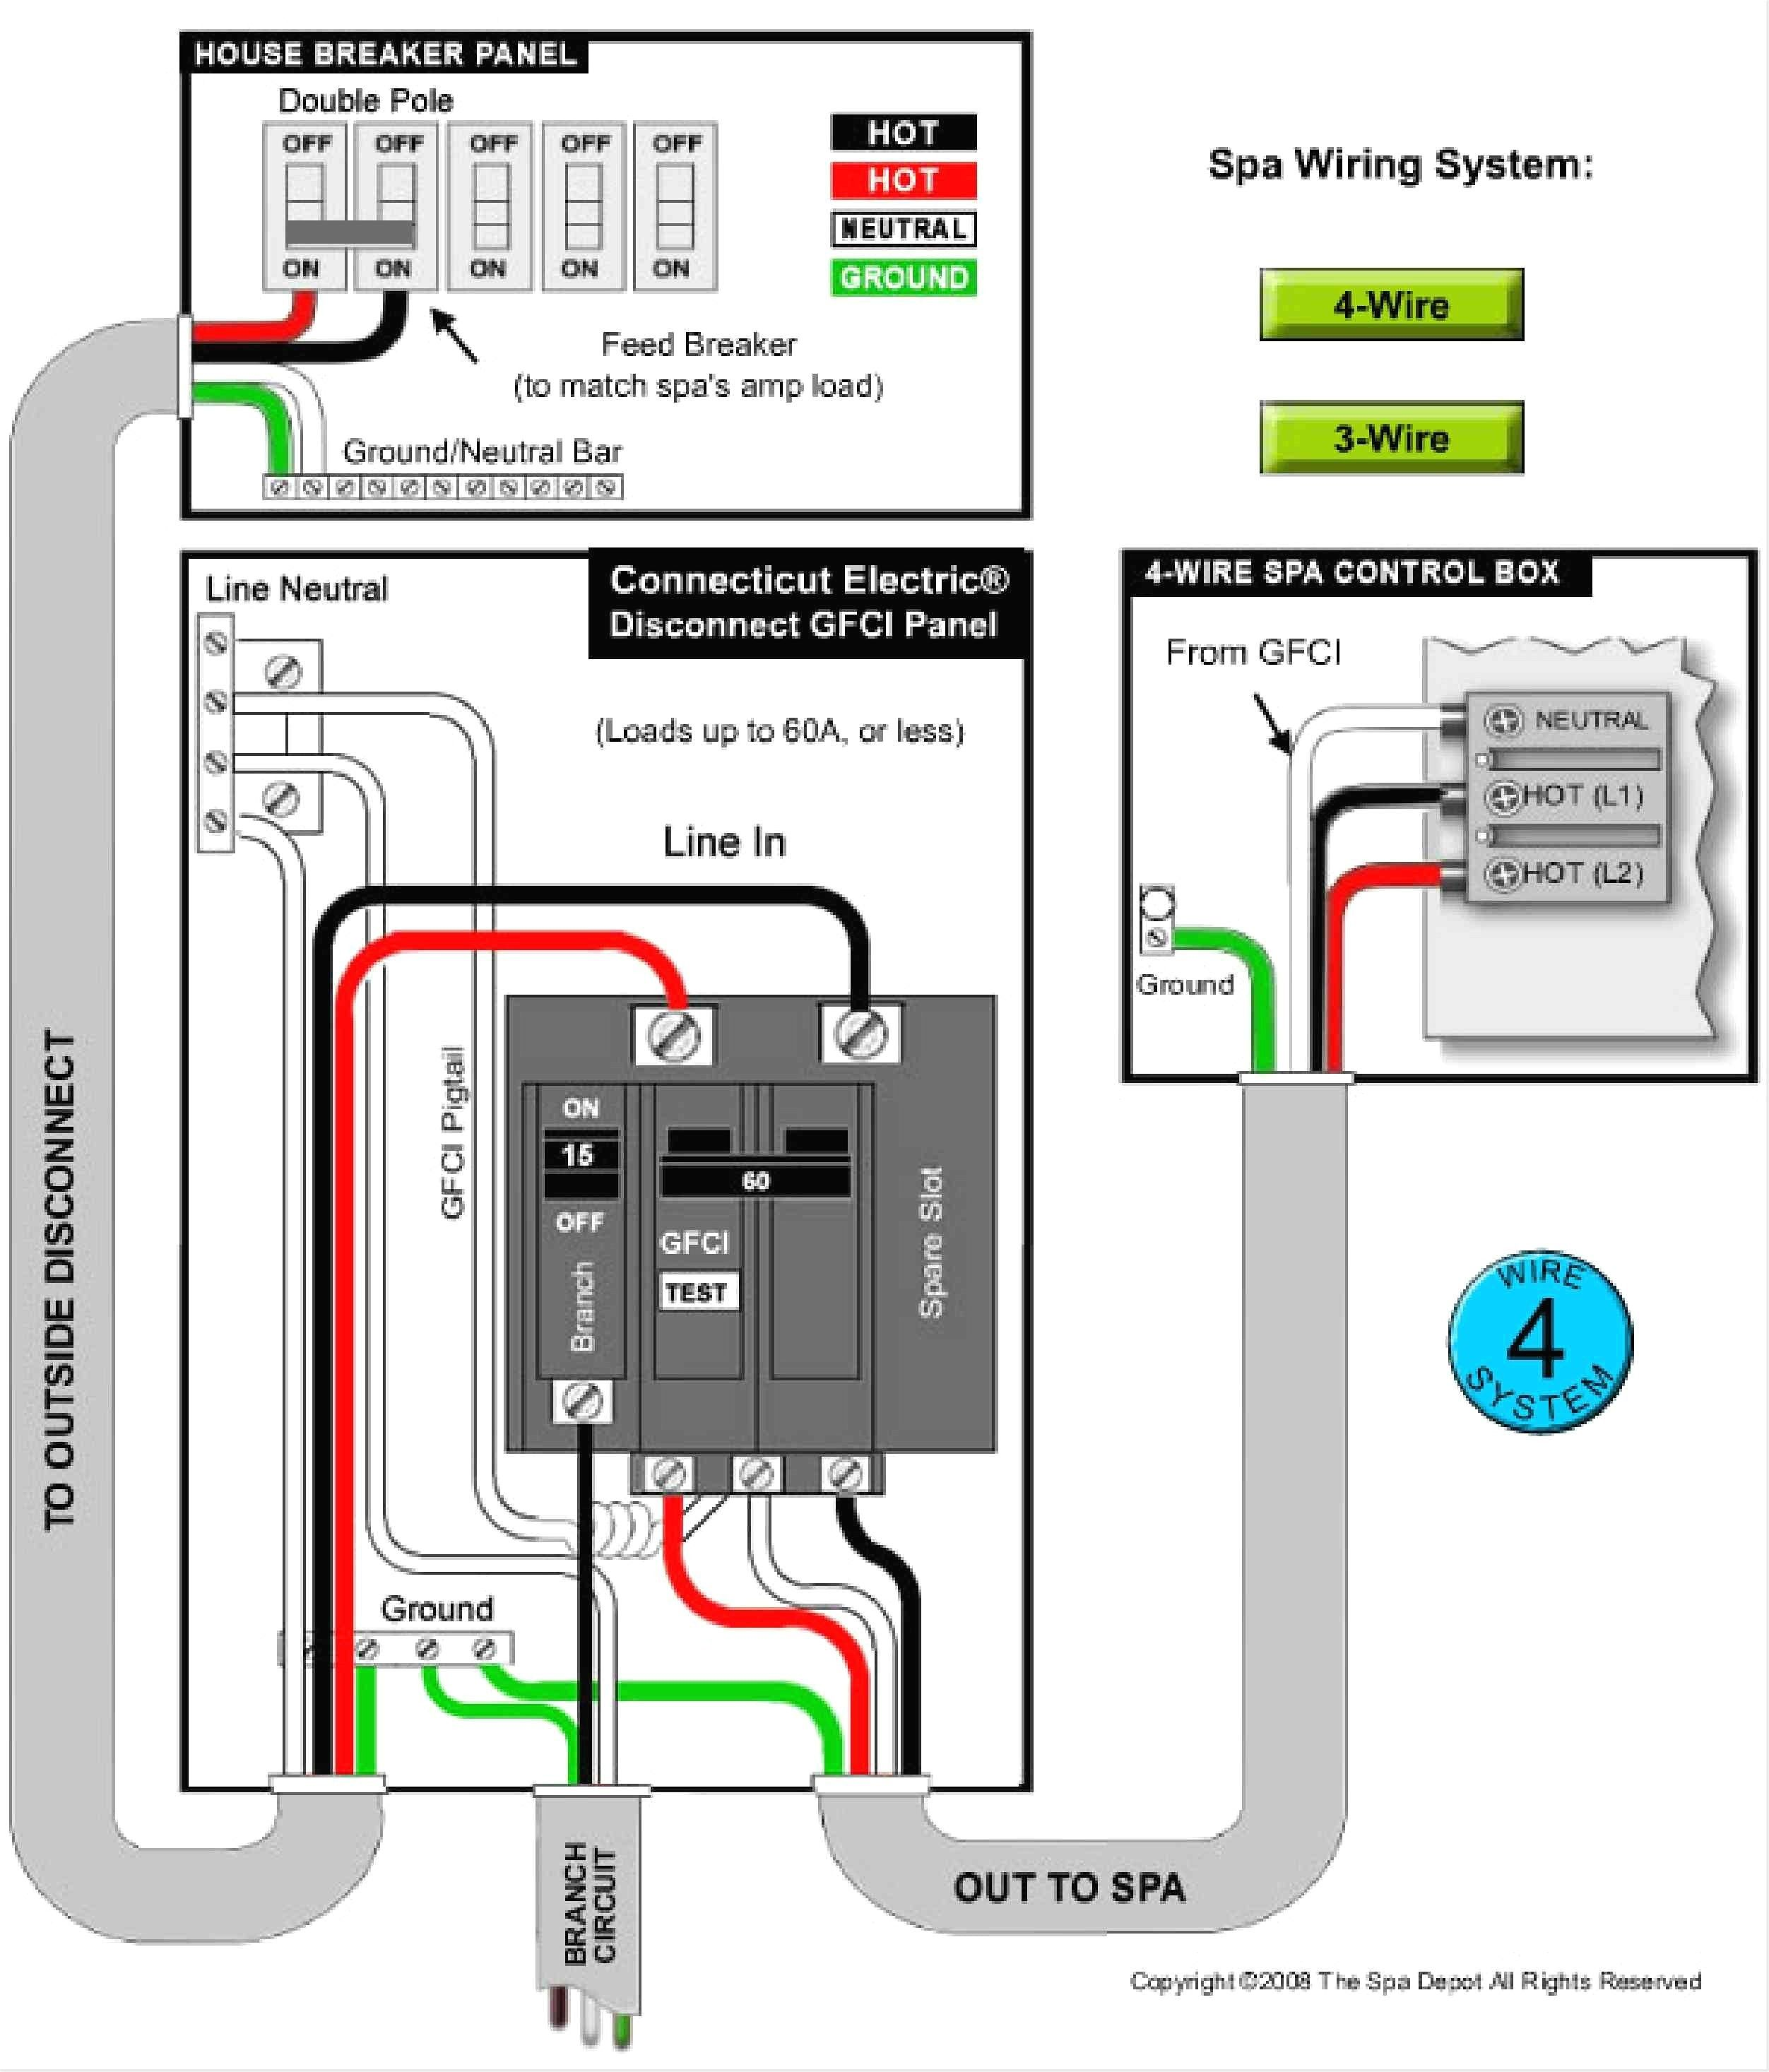 New Gfci Wiring Diagram For Hot Tub Diagram Diagramsample Diagramtemplate Wiringdiagram Diagramchart Workshe Gfci Home Electrical Wiring Hot Tub Delivery